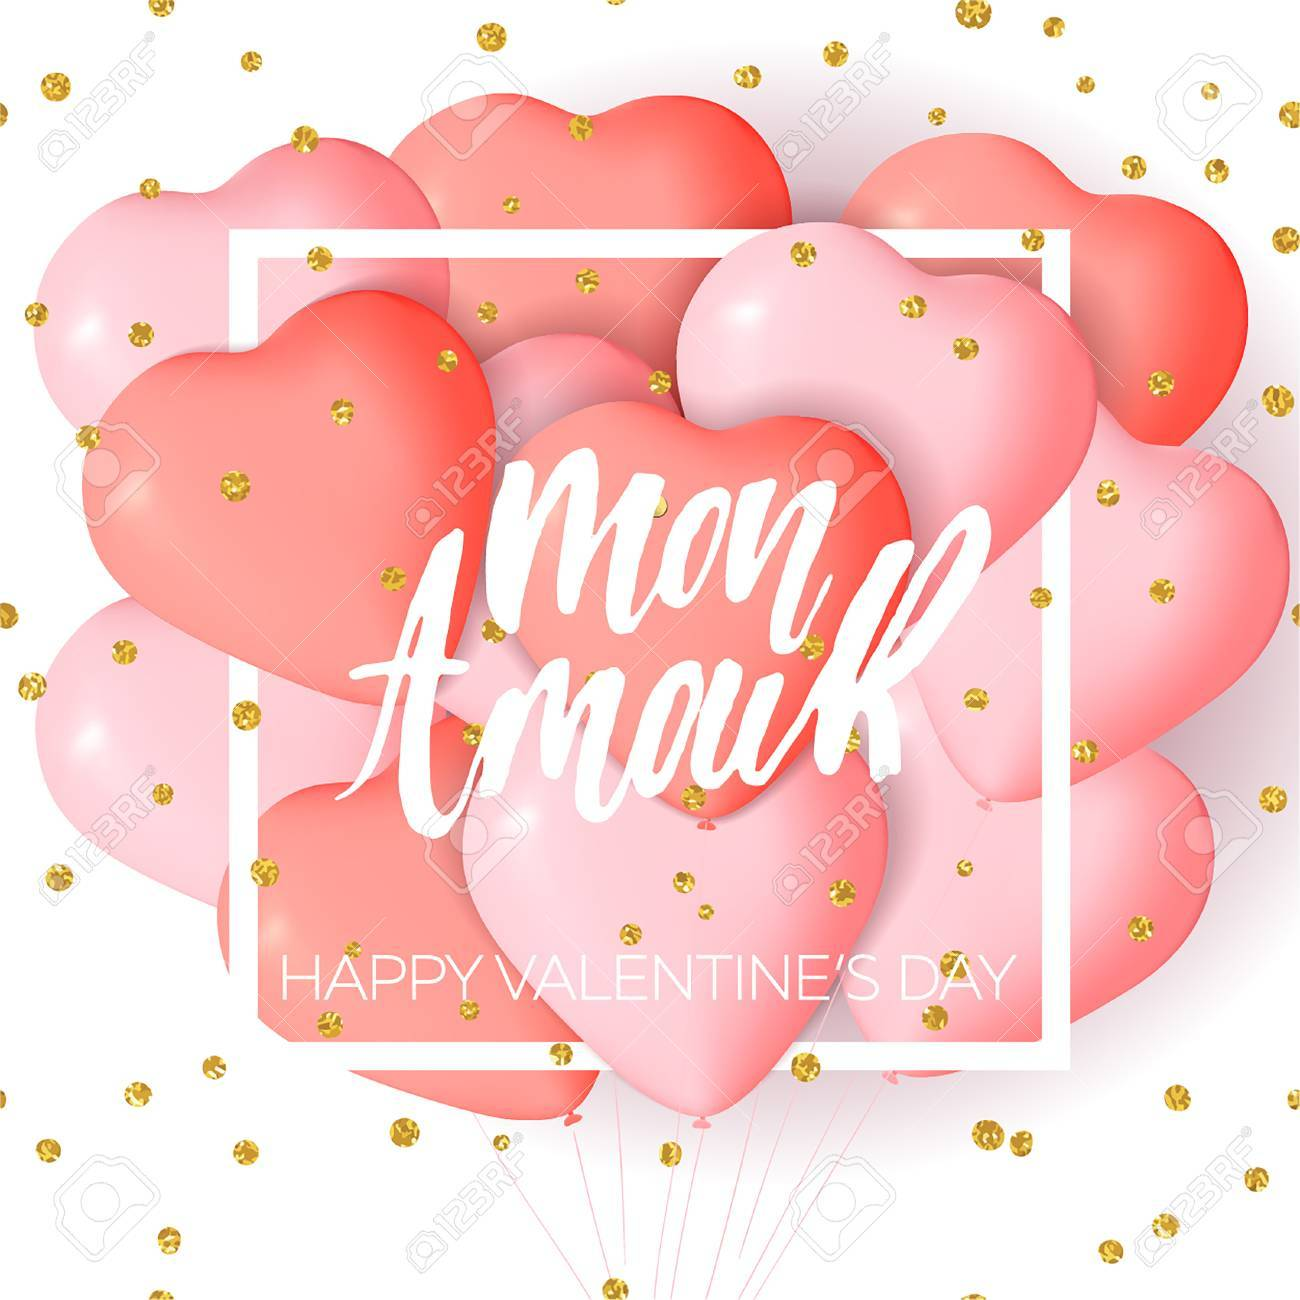 Happy valentines day card template with cute and fancy pink happy valentines day card template with cute and fancy pink red heart balloons with lettering m4hsunfo